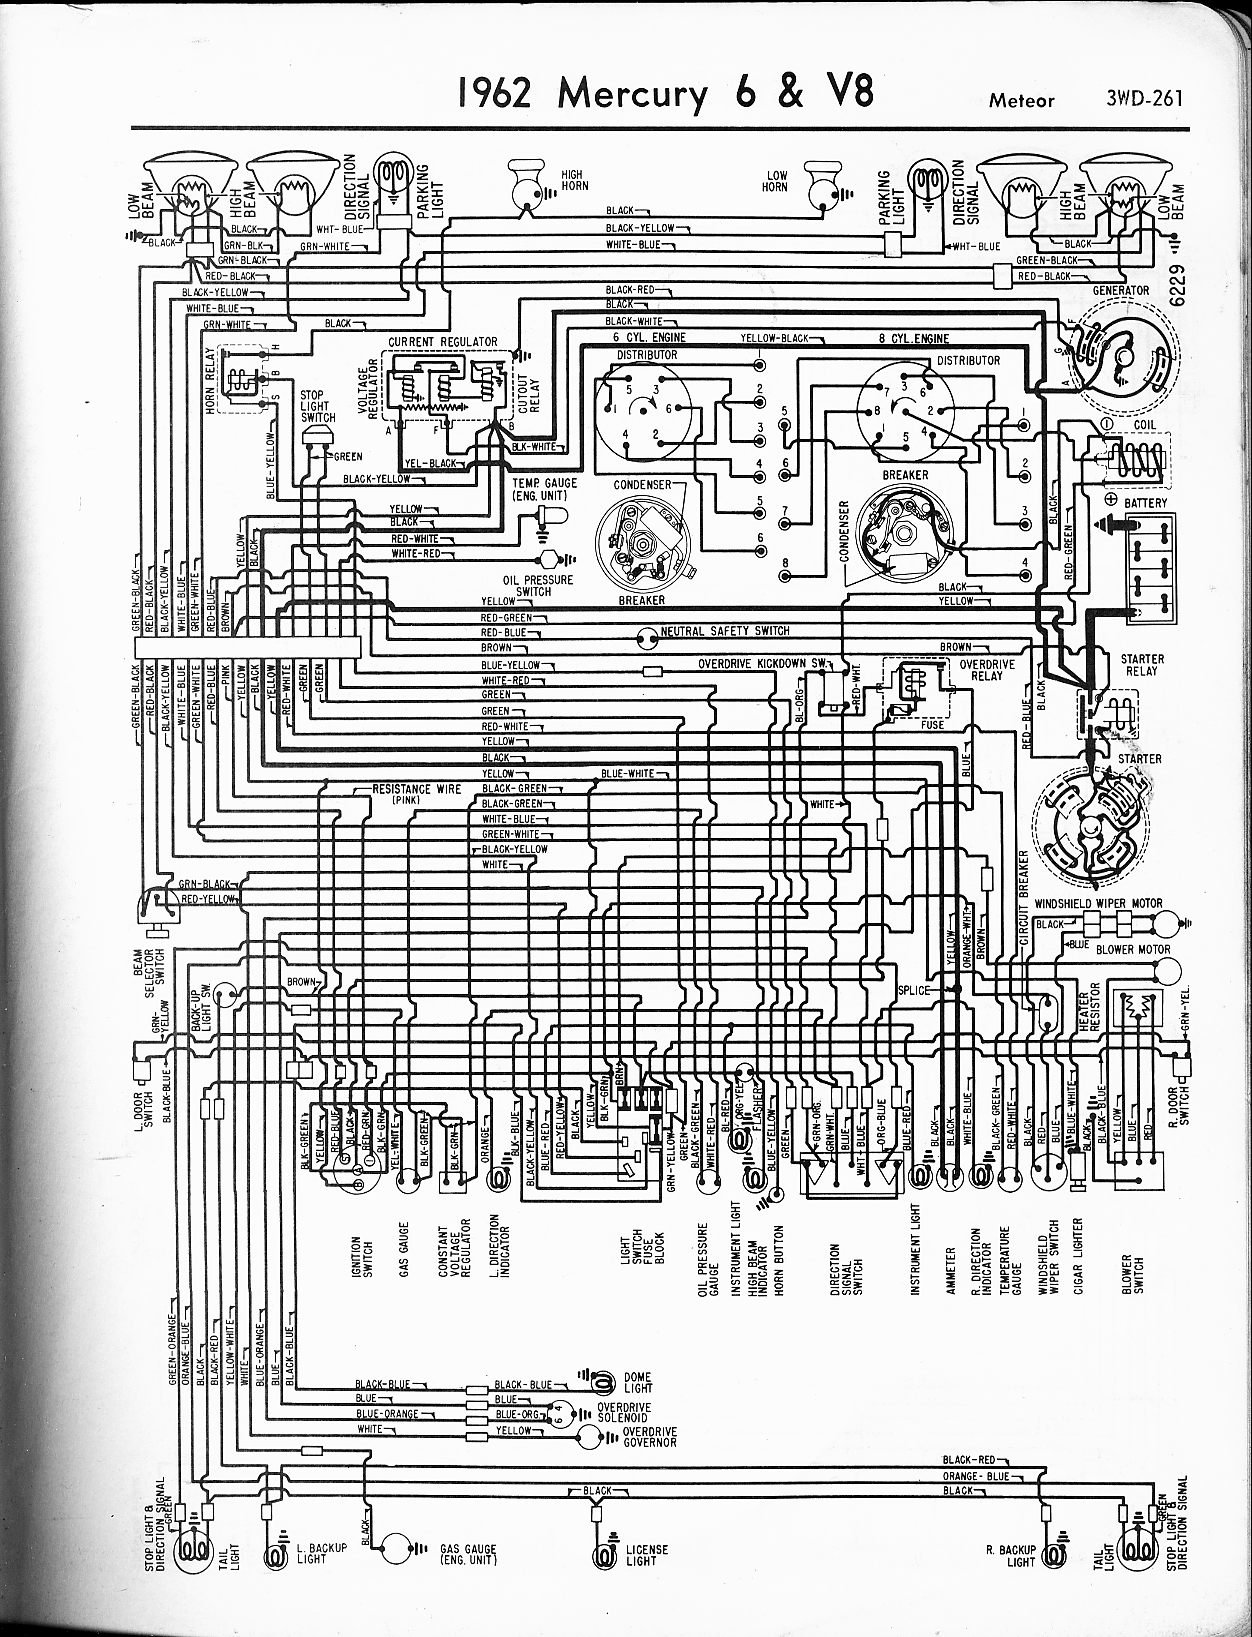 1963 Comet Wiring Diagram Diagrams Img Ford Galaxie 62 Schematic White